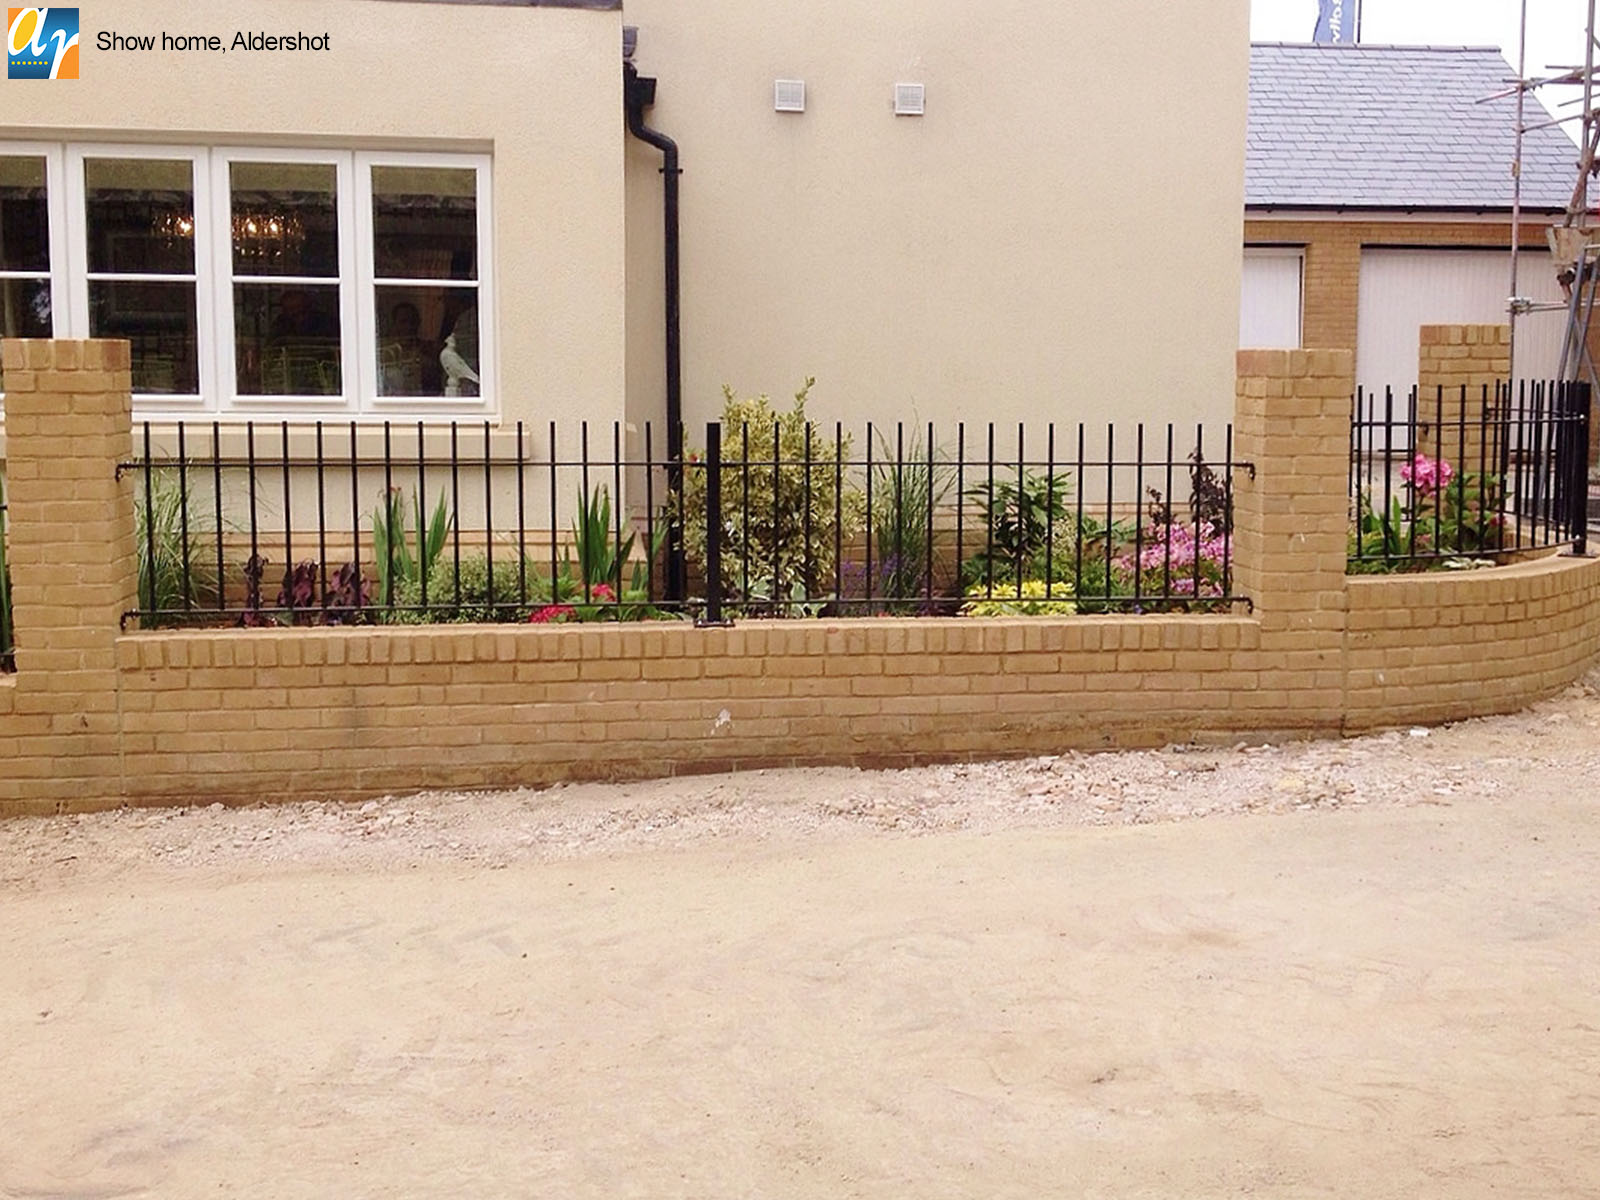 Aldershot show home standard vertical bar railings